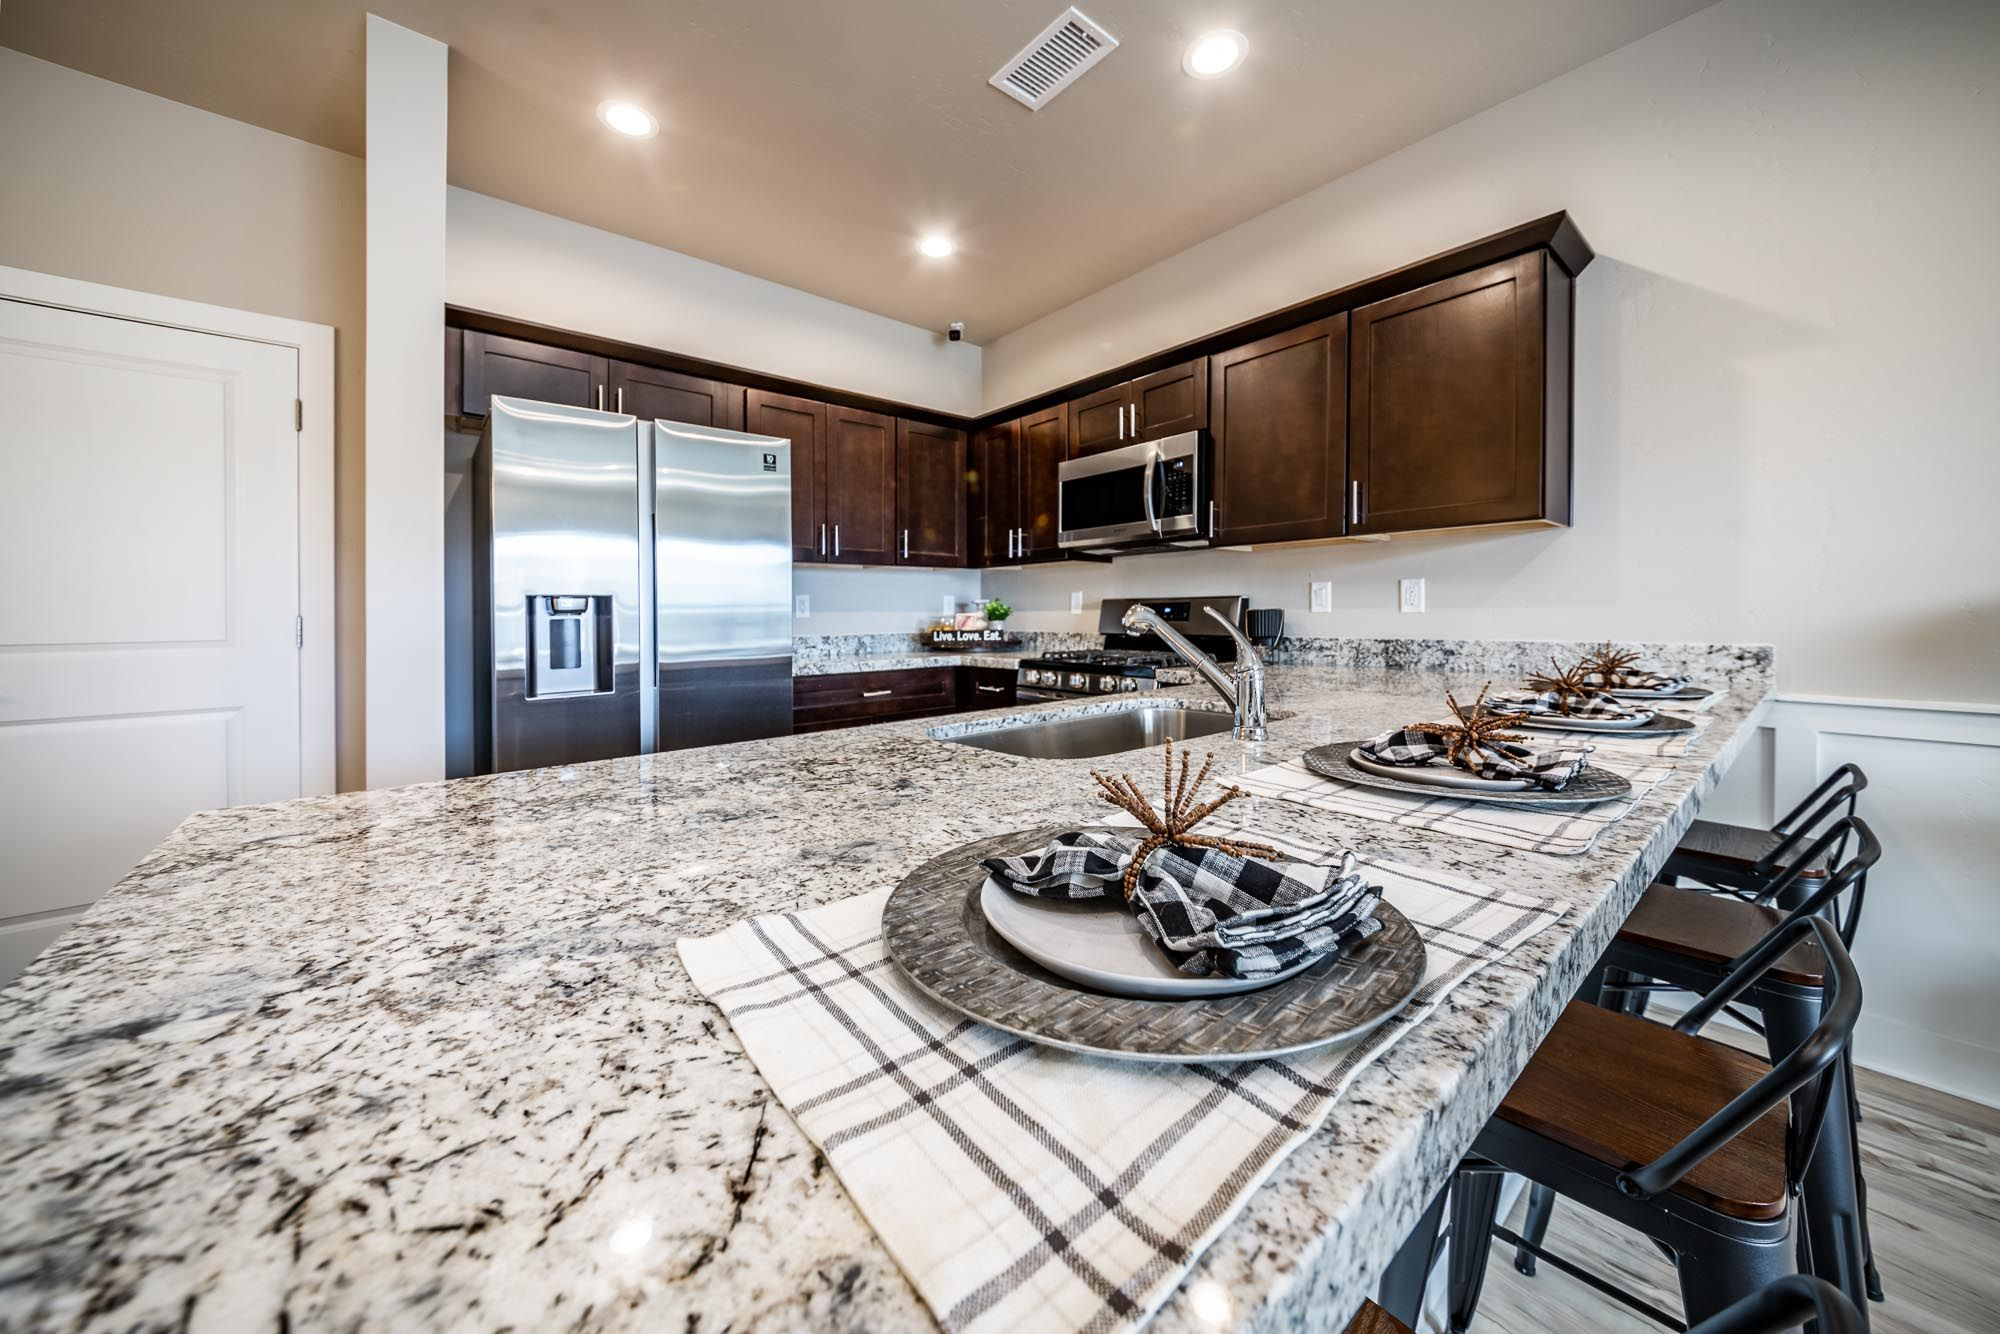 Kitchen featured in the Plan 1 By Solid Homes in Flagstaff, AZ